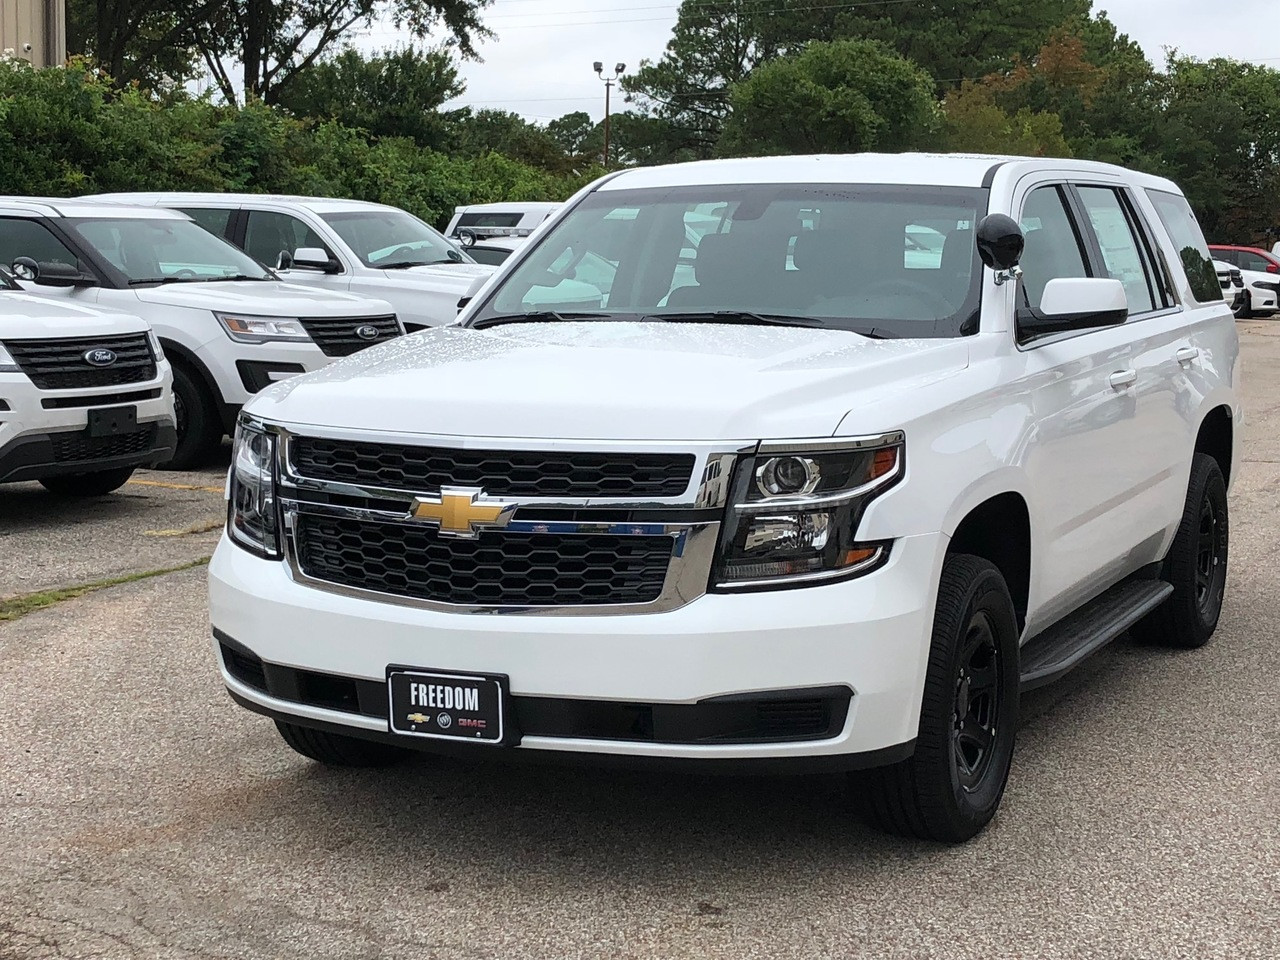 2019 Chevy Tahoe >> New 2019 Chevy Tahoe Police Package V8 2wd Ready To Be Built As A Slick Top Admin Package Choose Any Color Led Lights Delivery